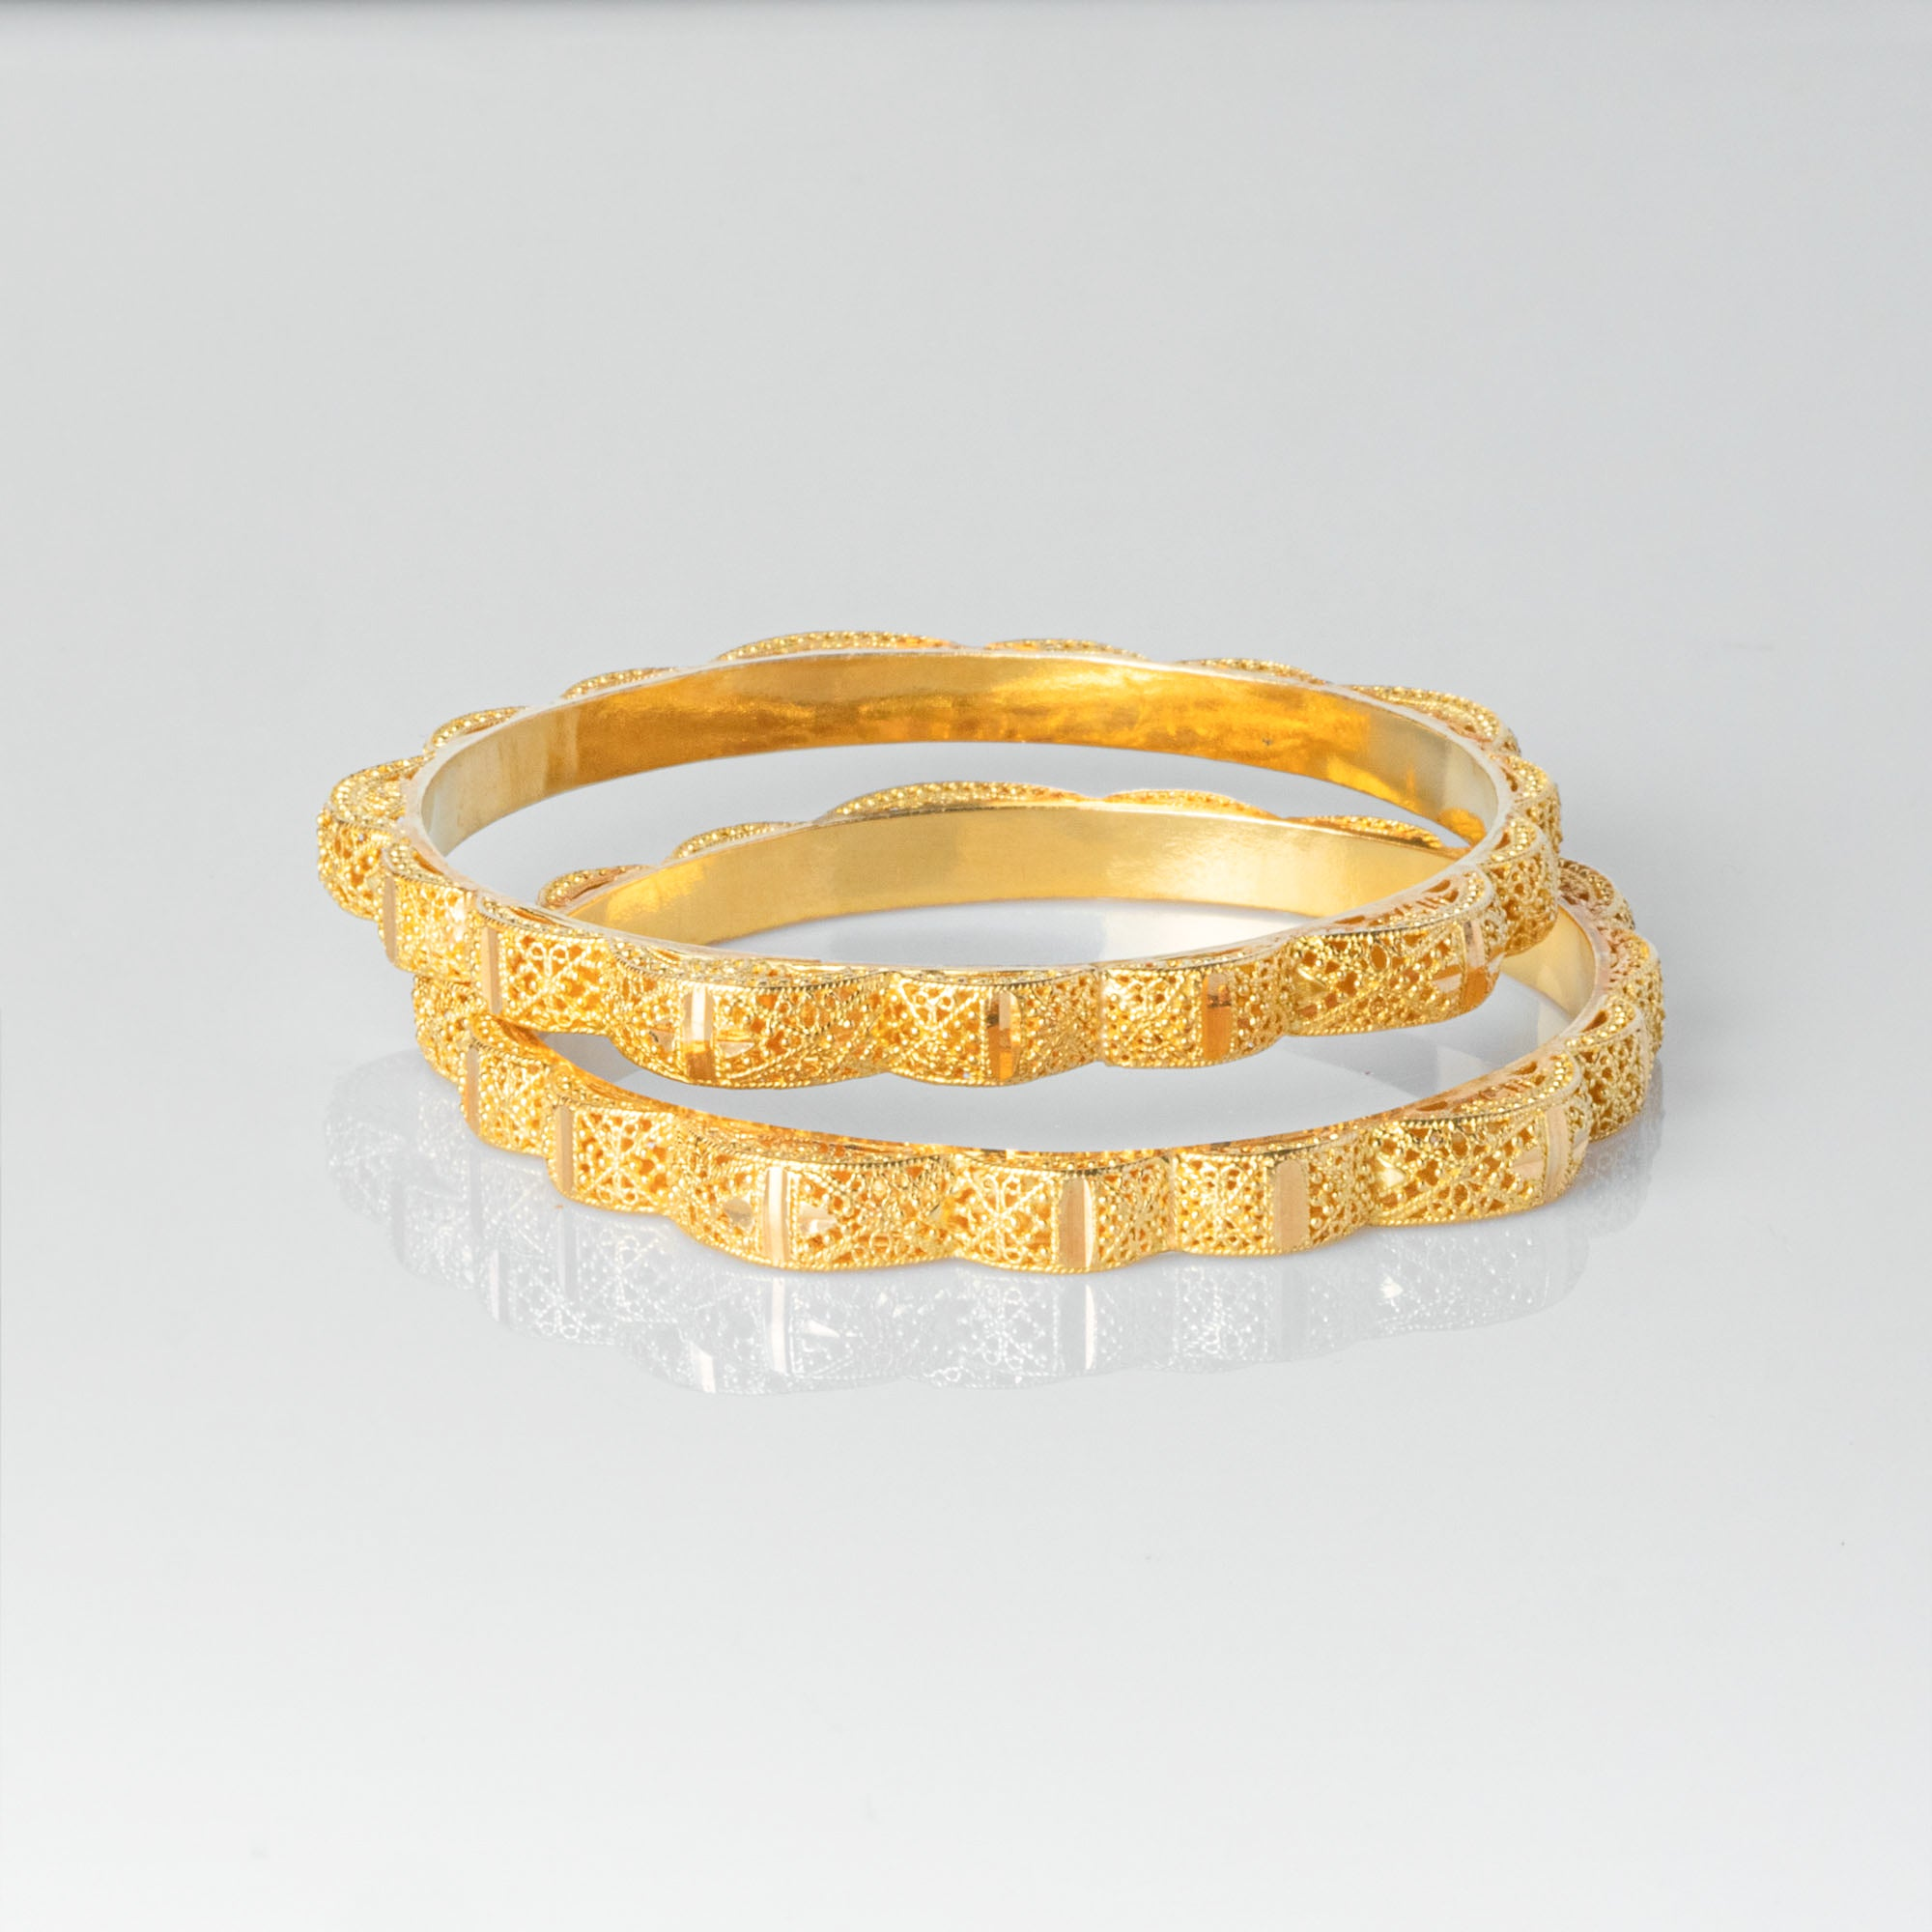 22ct Gold Bangle with Diamond Cut Filigree Design B-1511